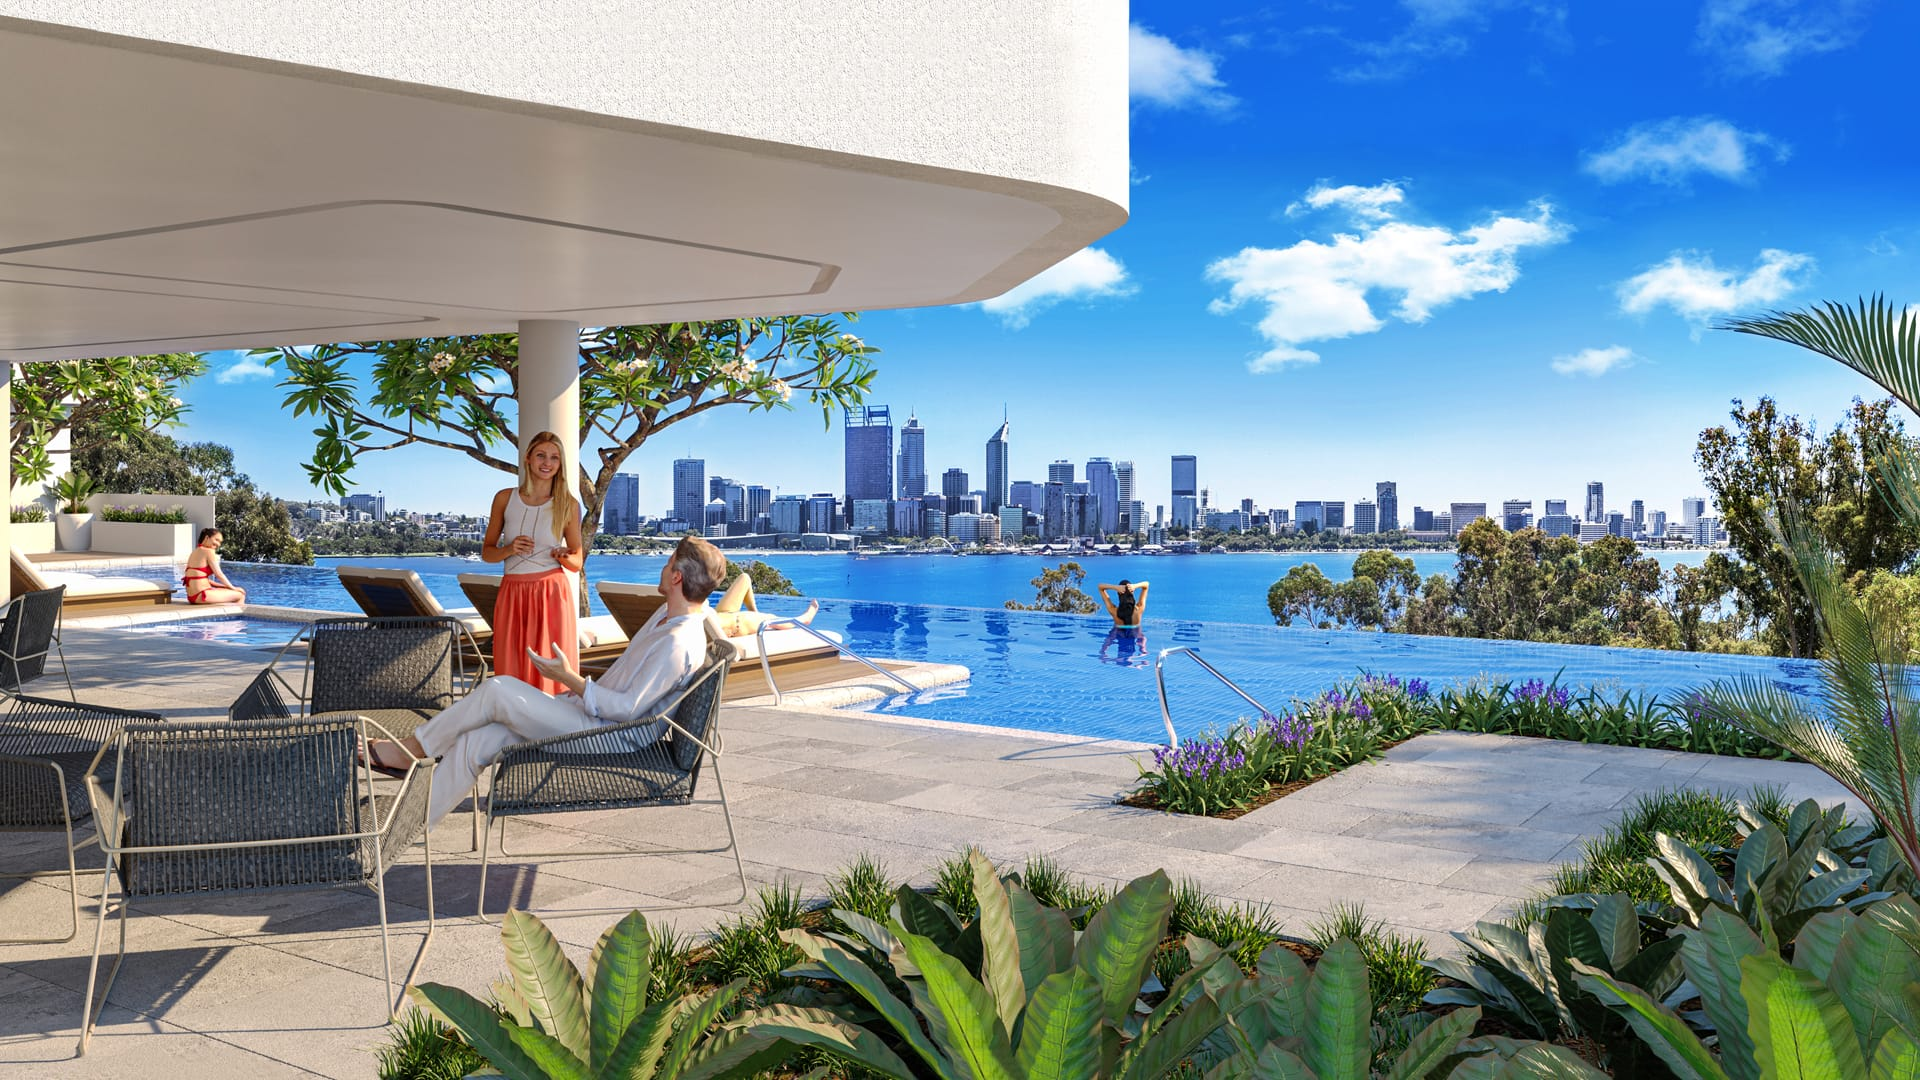 Balcony and swimming pool overlooking Perth city